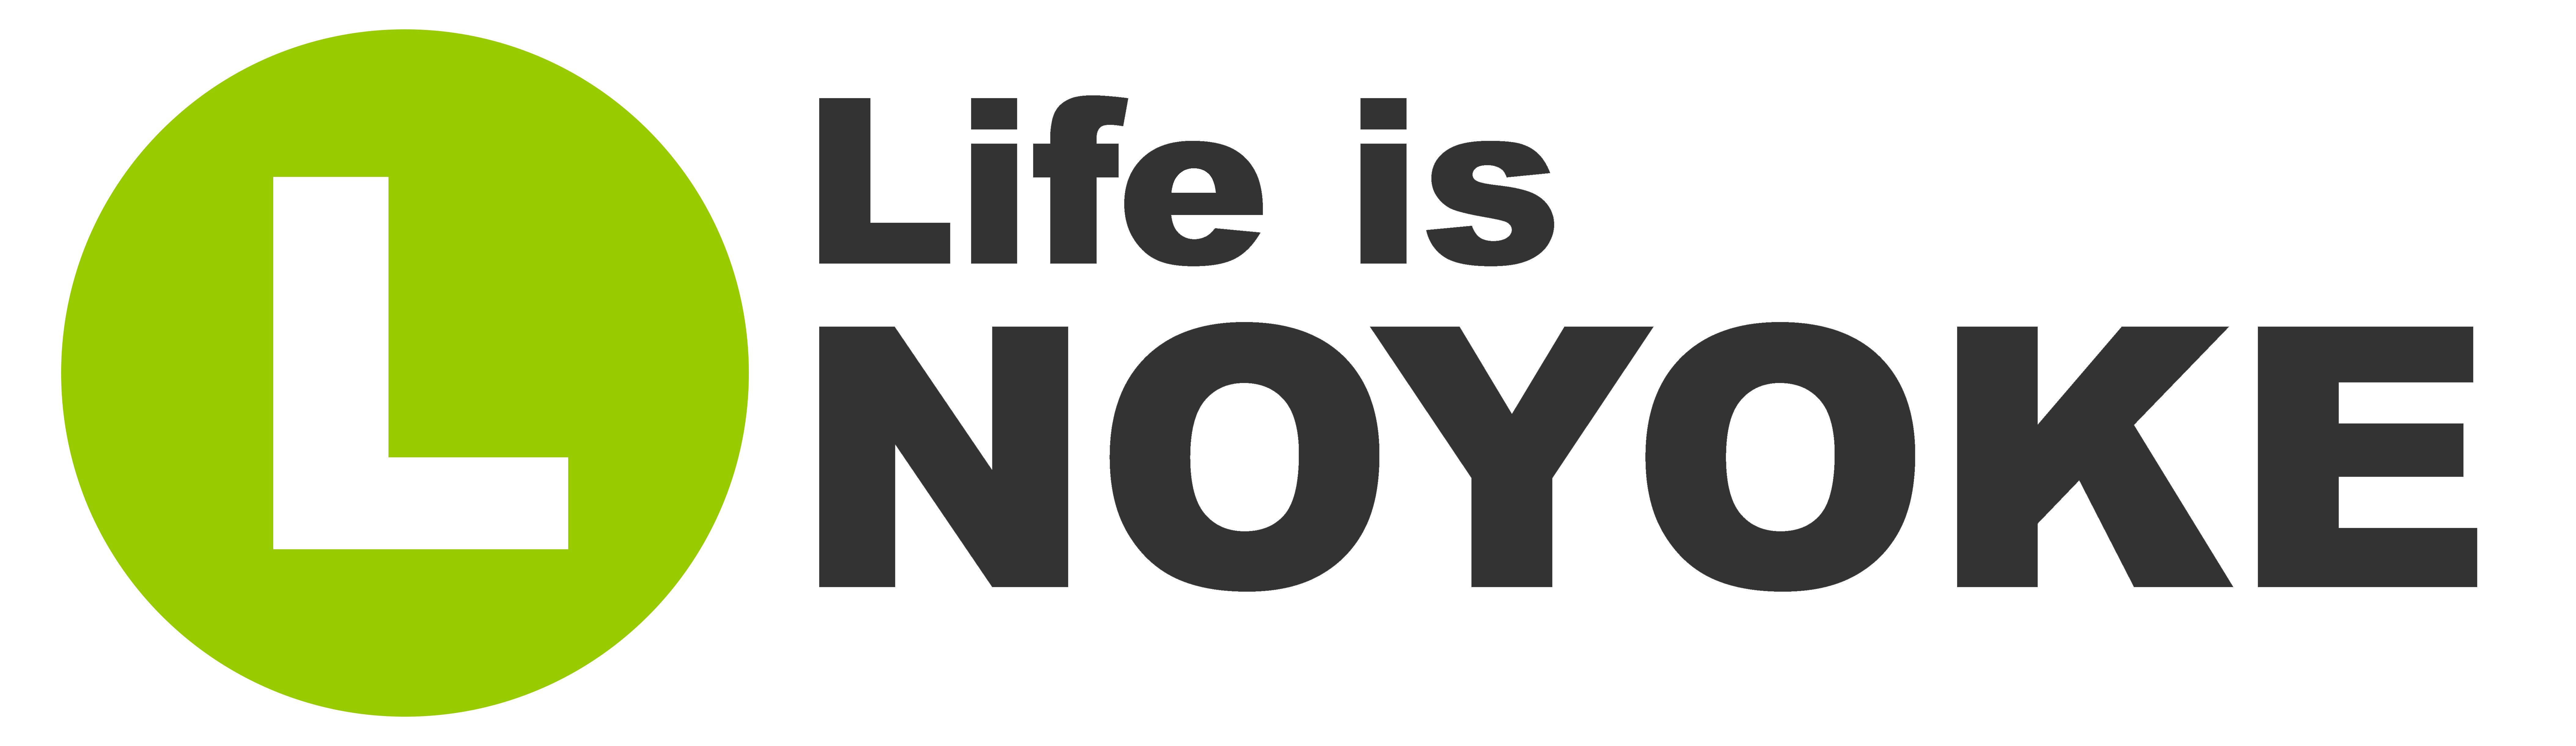 Life is NOYOKE logo with L green circle